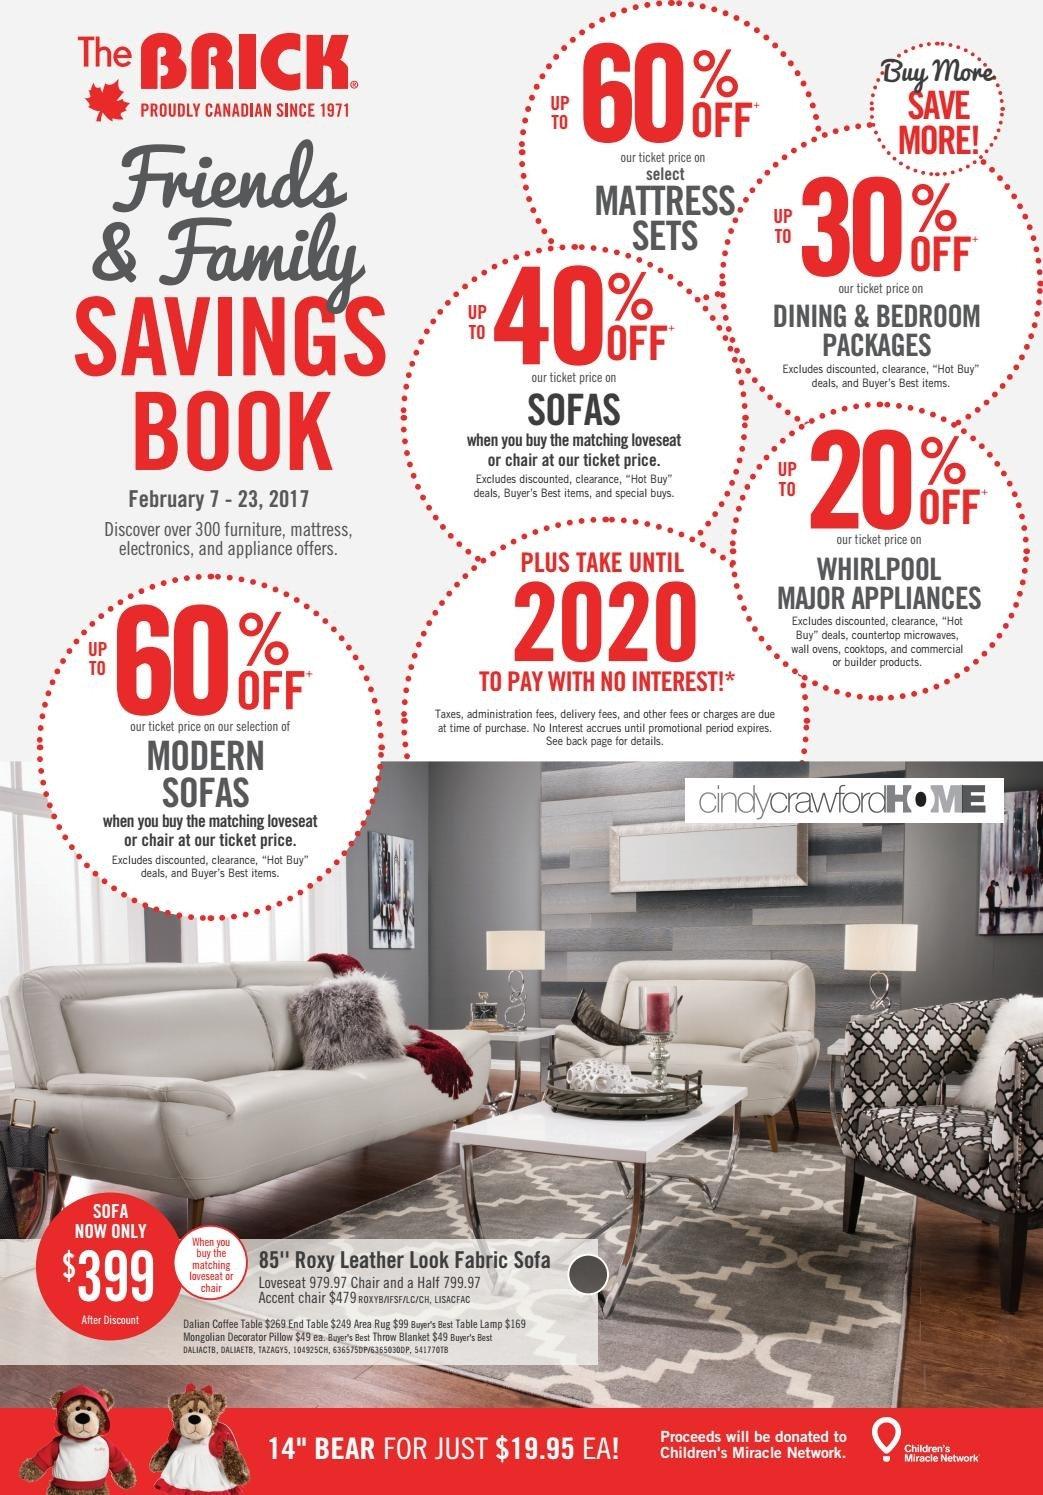 Publisac 2017 Flyer (Brick_Wk7_Queen)Salewhale   Issuu For London Optical Reversible Sofa Chaise Sectionals (Photo 18 of 30)